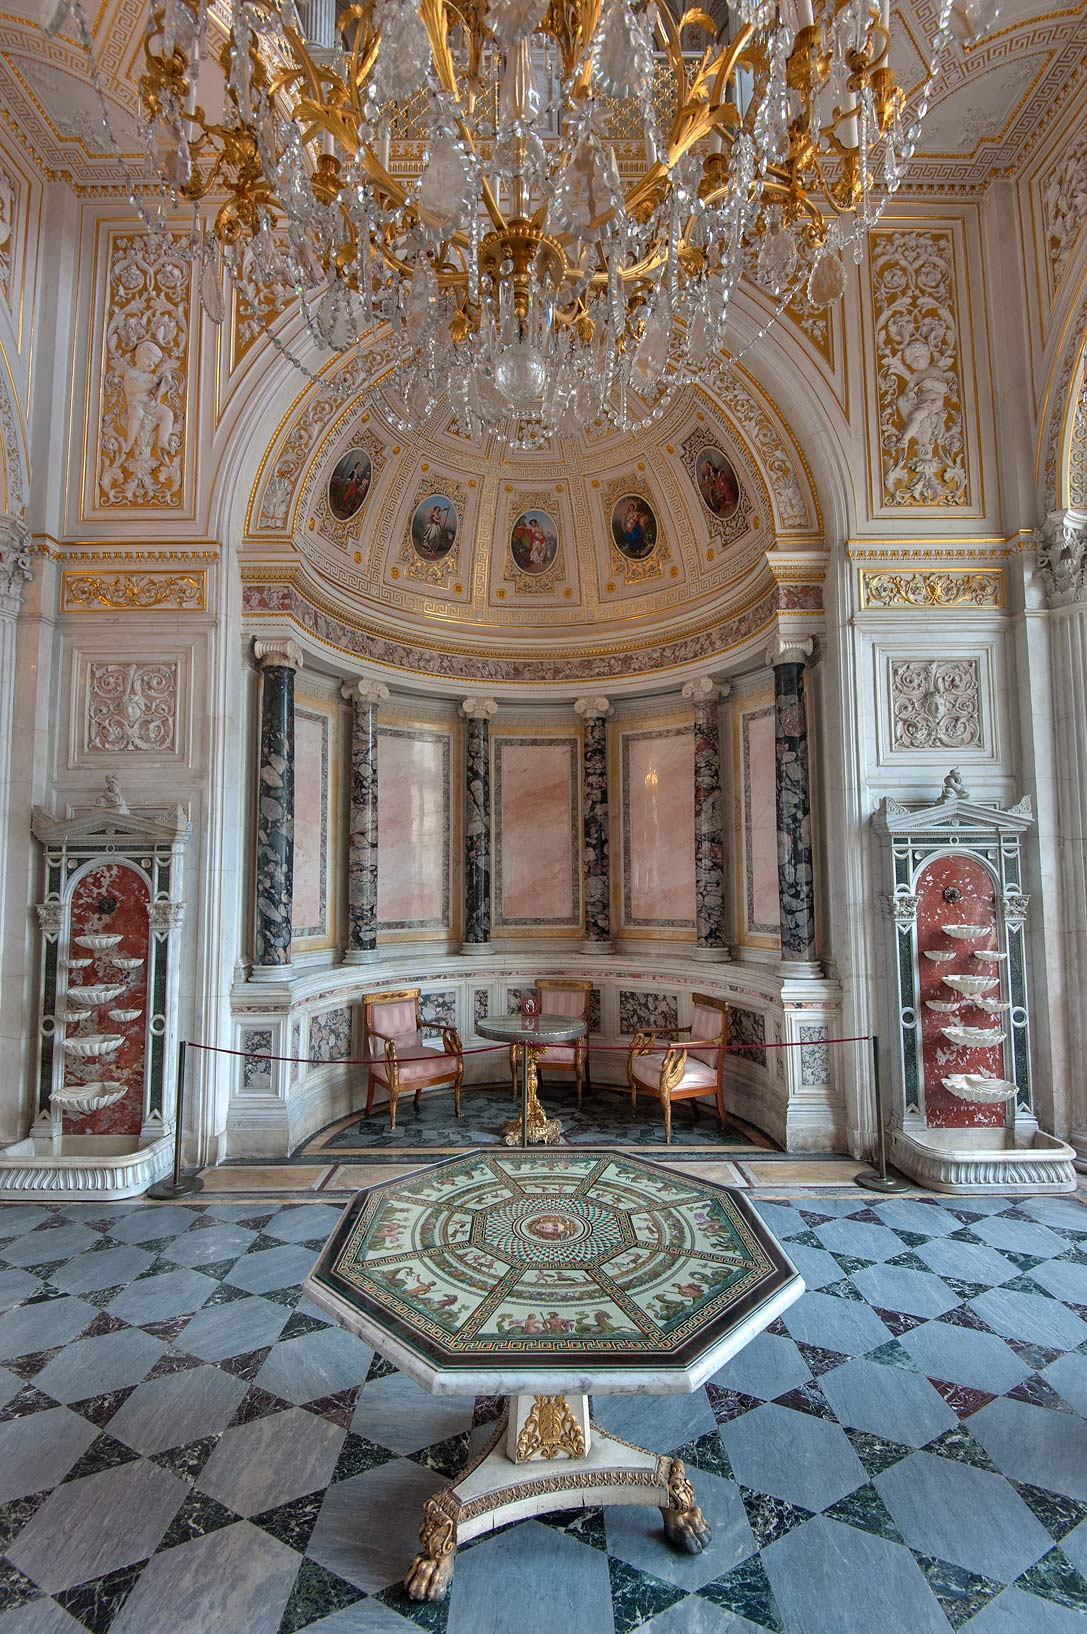 Marble decorations in Pavilion Hall in Hermitage Museum. St.Petersburg, Russia